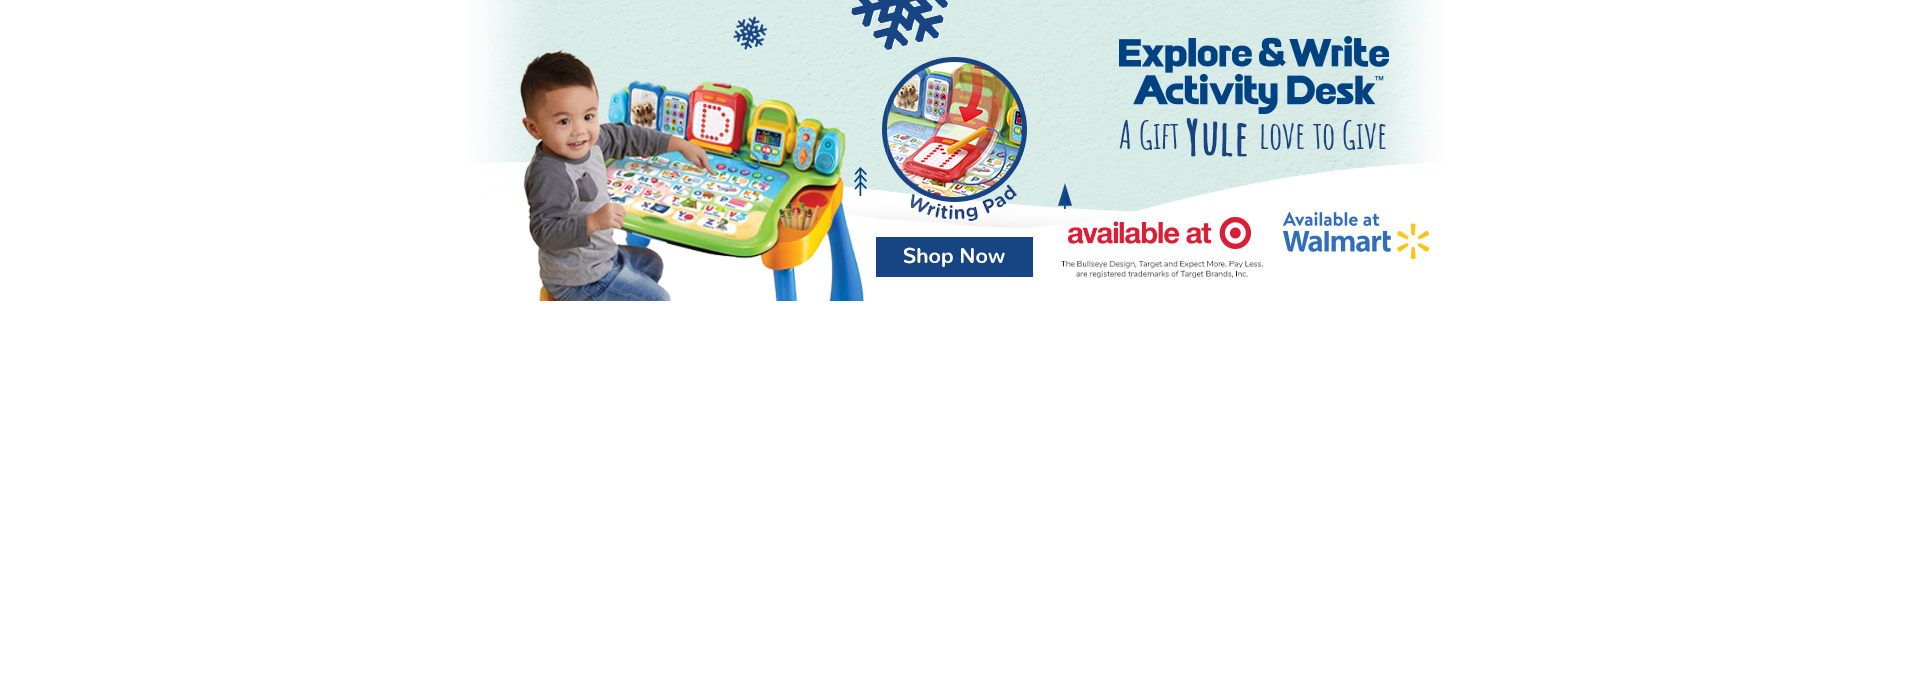 Check out the Explore & Write Activity Desk - Available at Target & Walmart